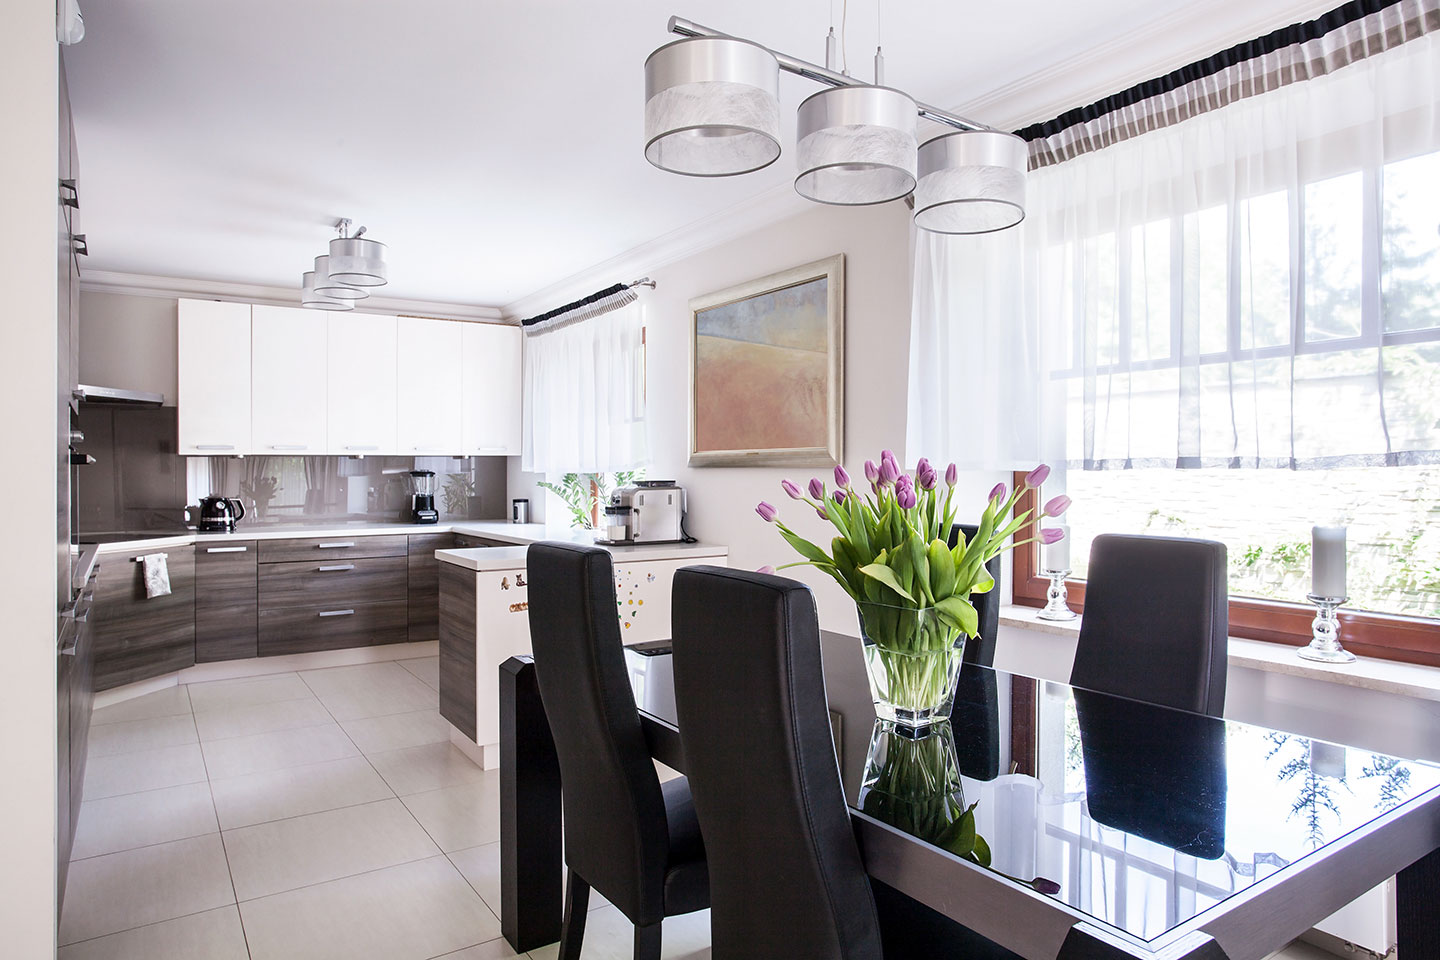 Image of dining area - Kingston, Ontario real estate